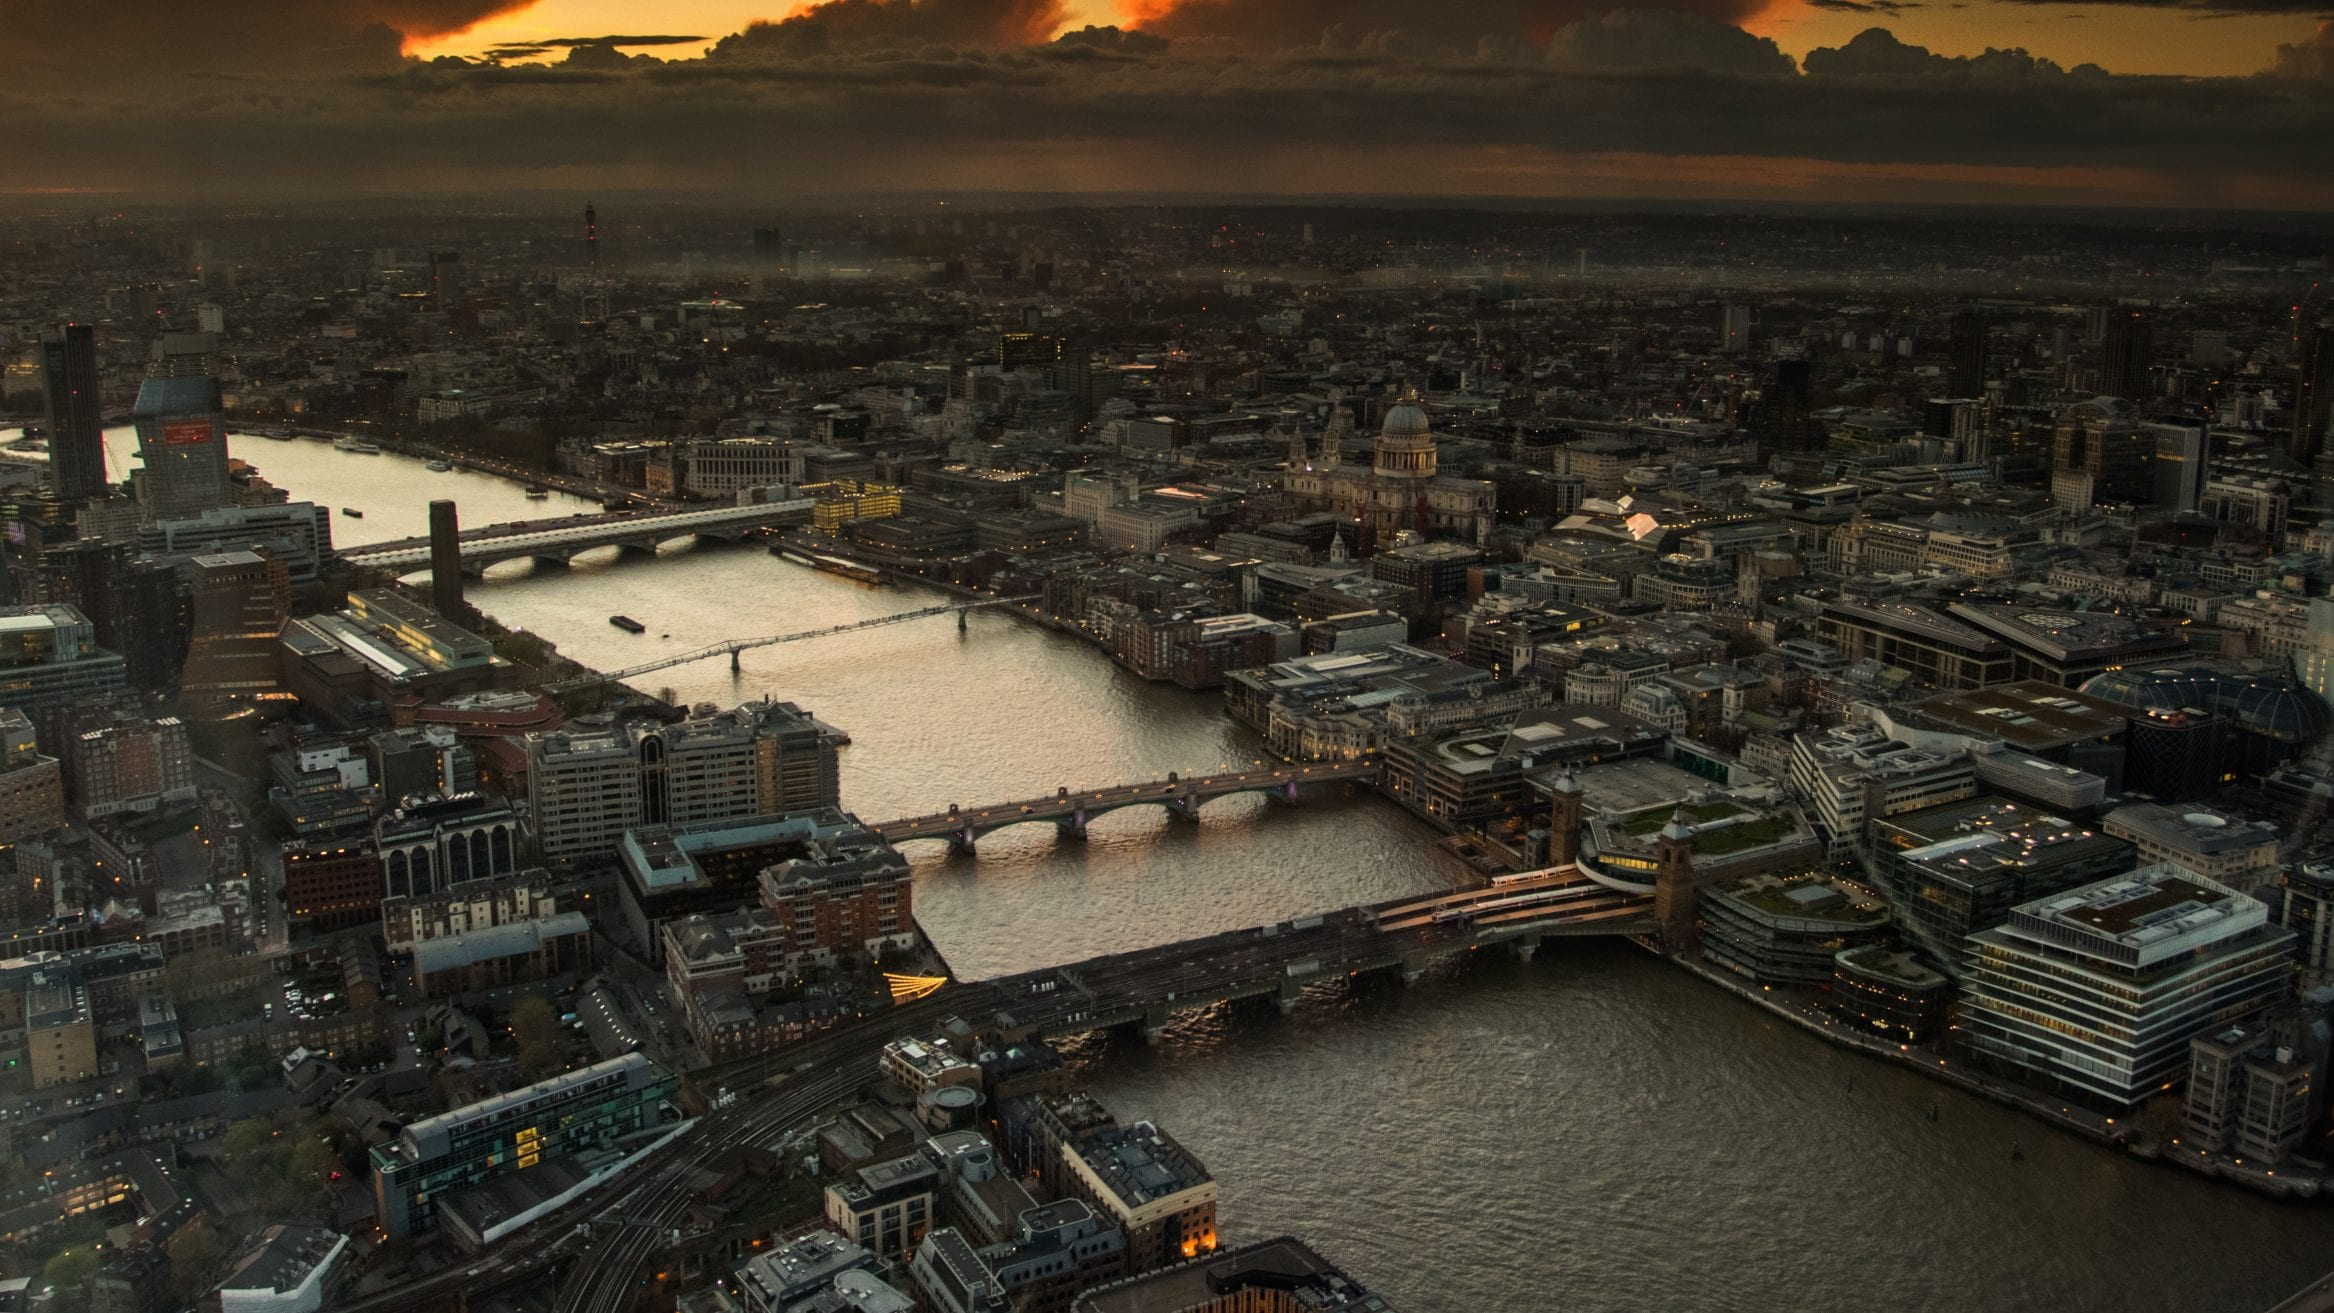 London microplastic particles